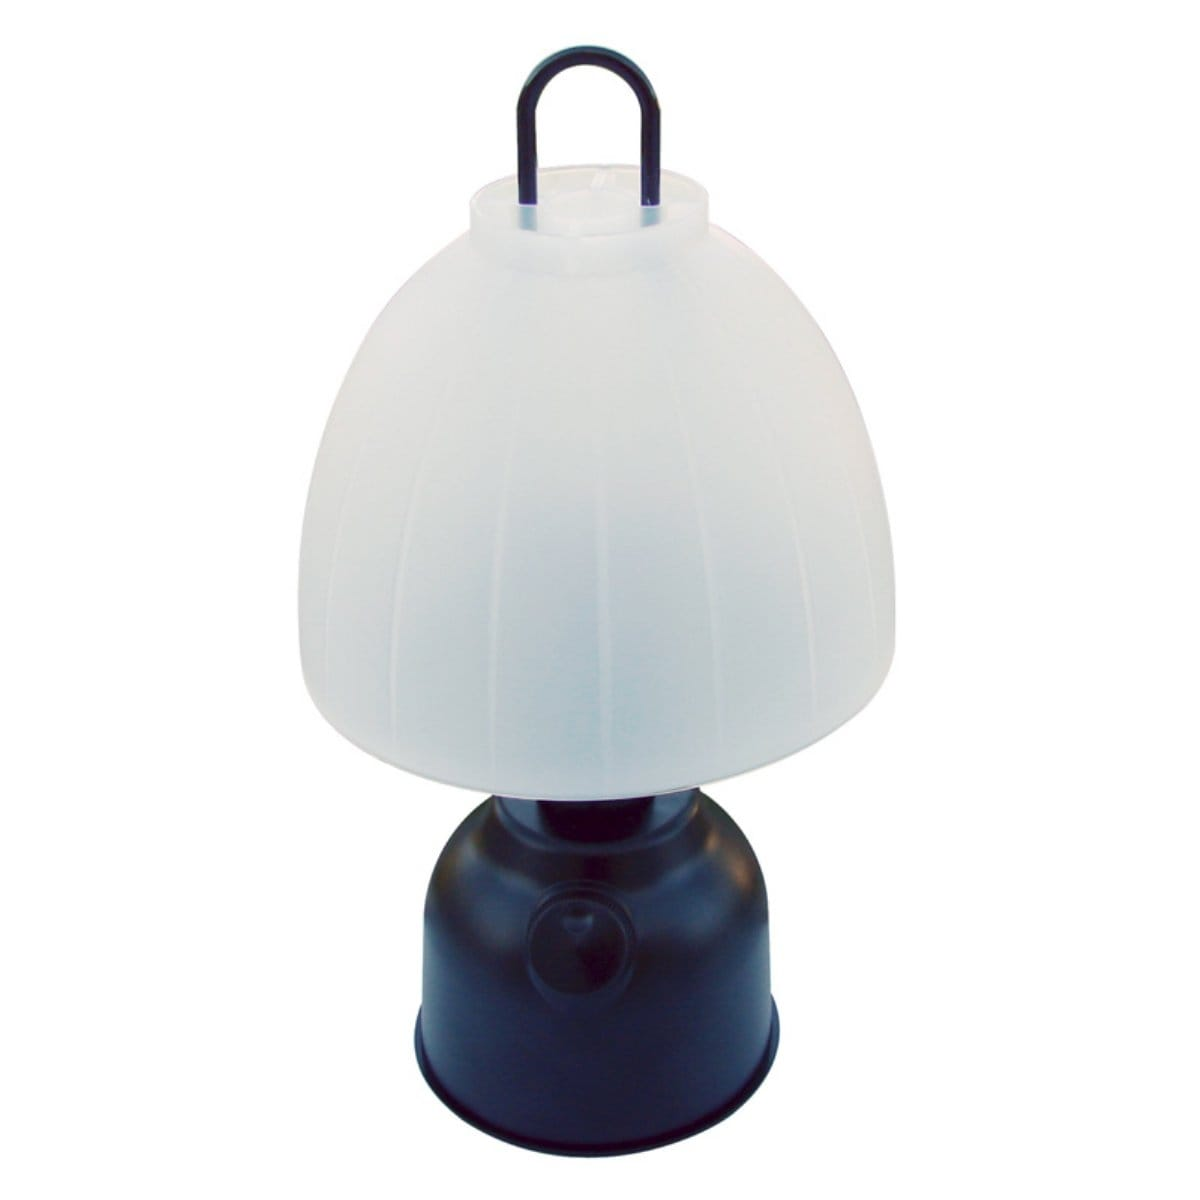 Shop Black Friday Deals On Dorcy 41 1016 Portable Indoor Outdoor Table Lamp Light With Hanging Hook Overstock 17780087